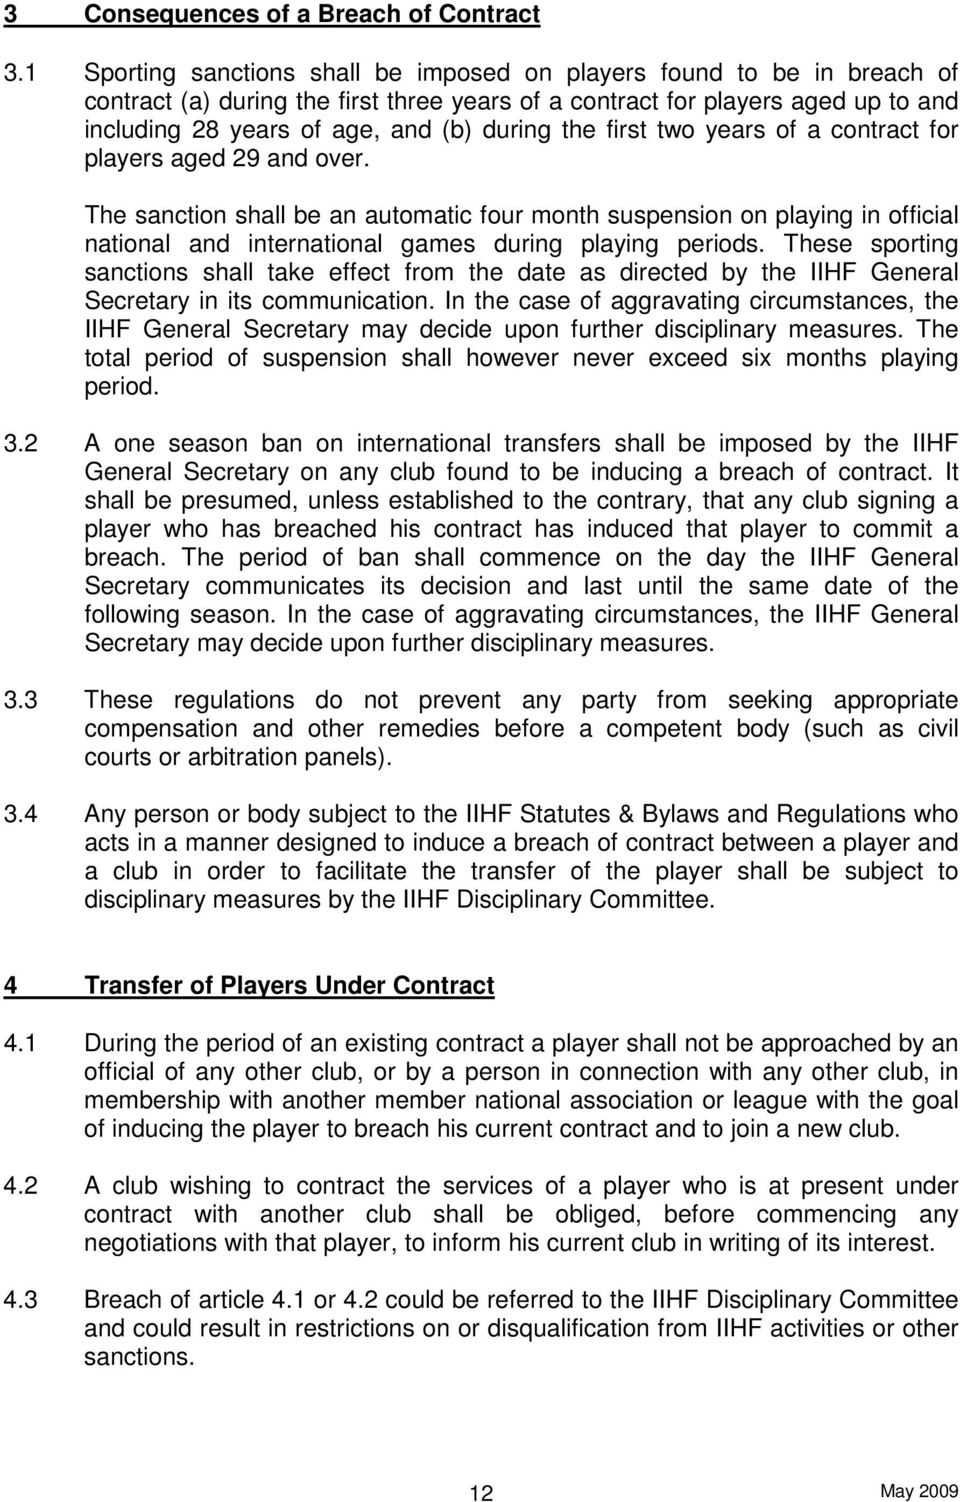 the first two years of a contract for players aged 29 and over. The sanction shall be an automatic four month suspension on playing in official national and international games during playing periods.